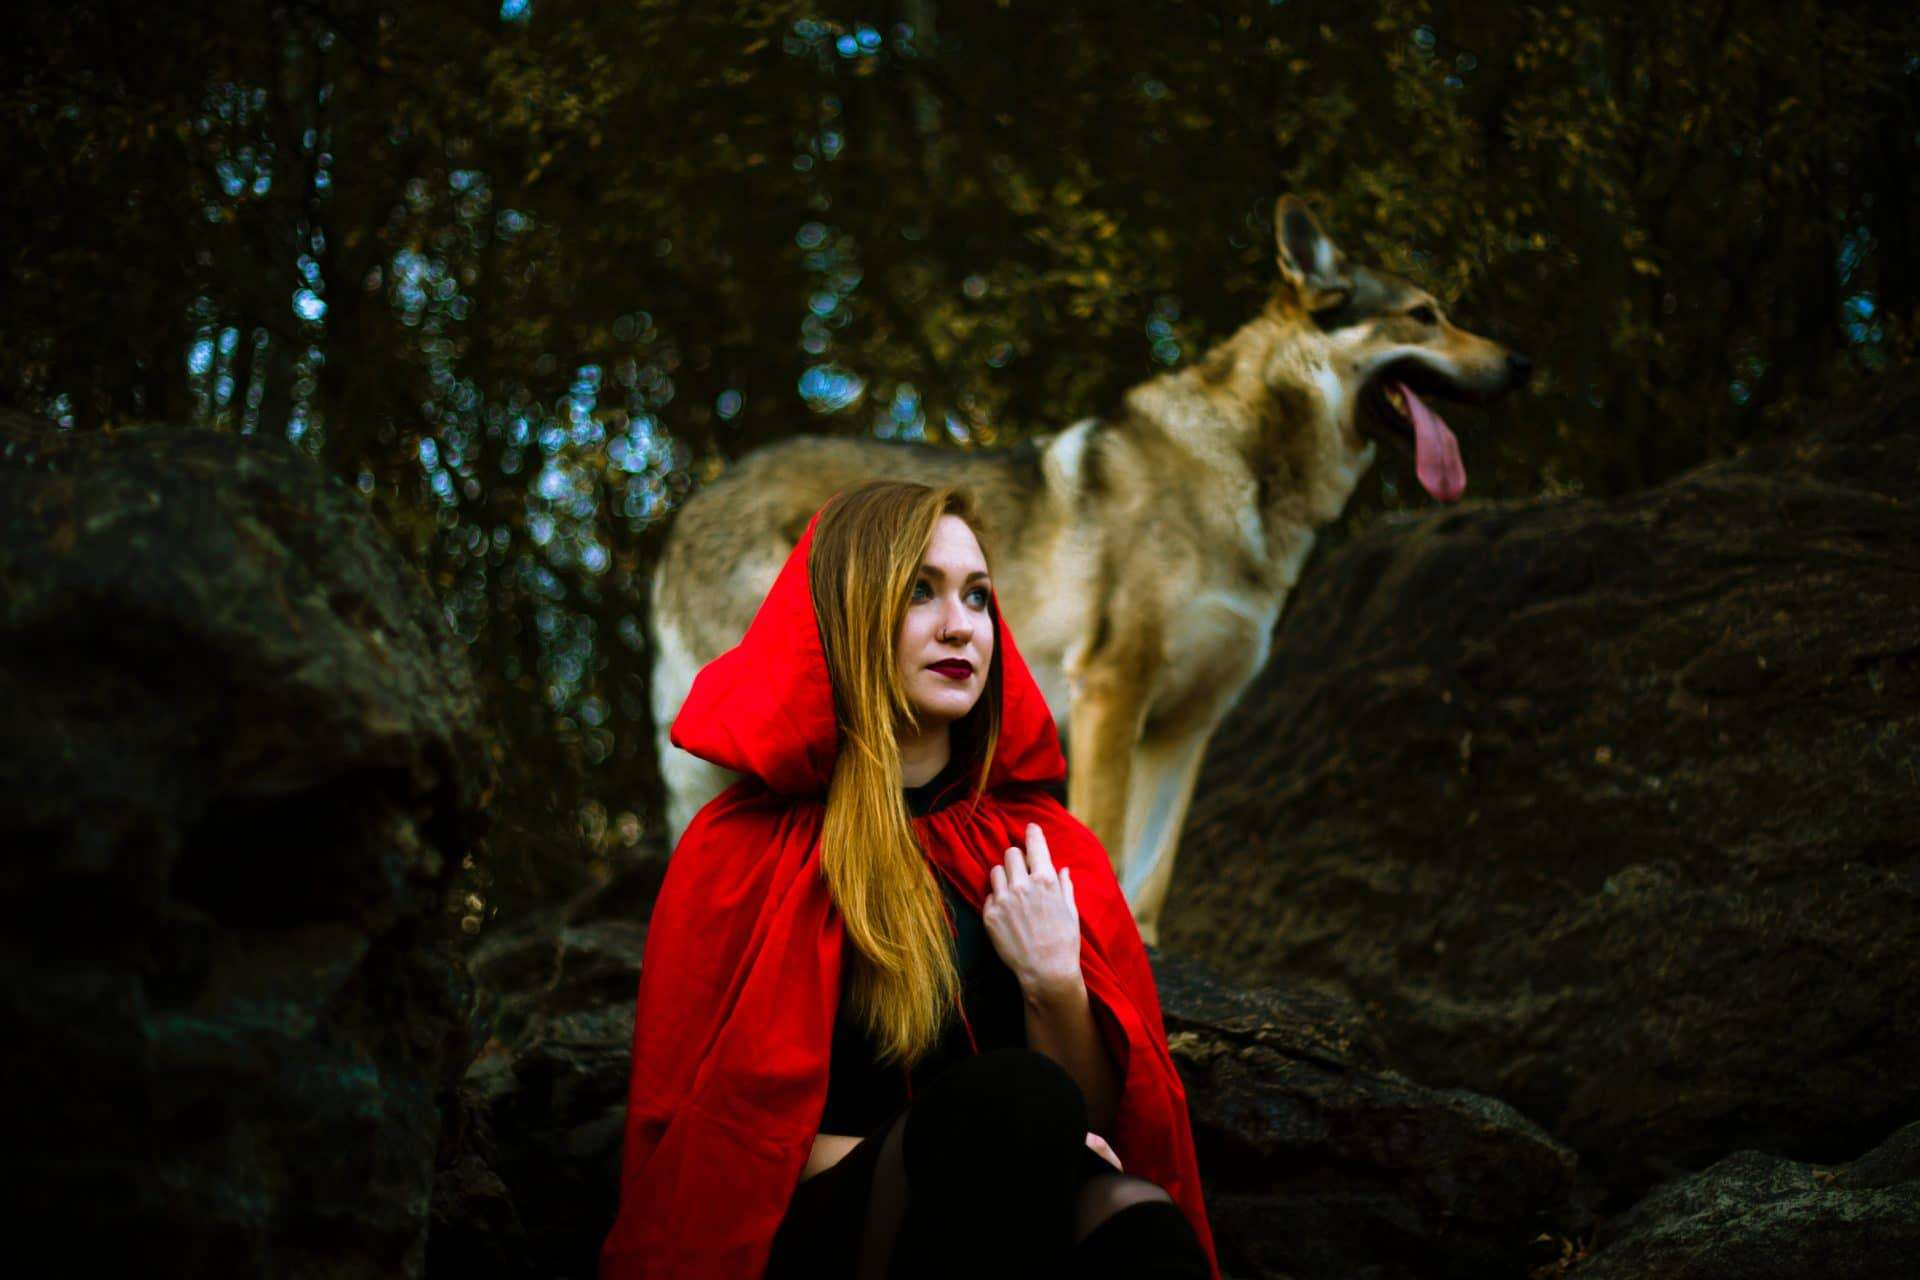 Women wearing a red hoodie cape and at her back is a dog